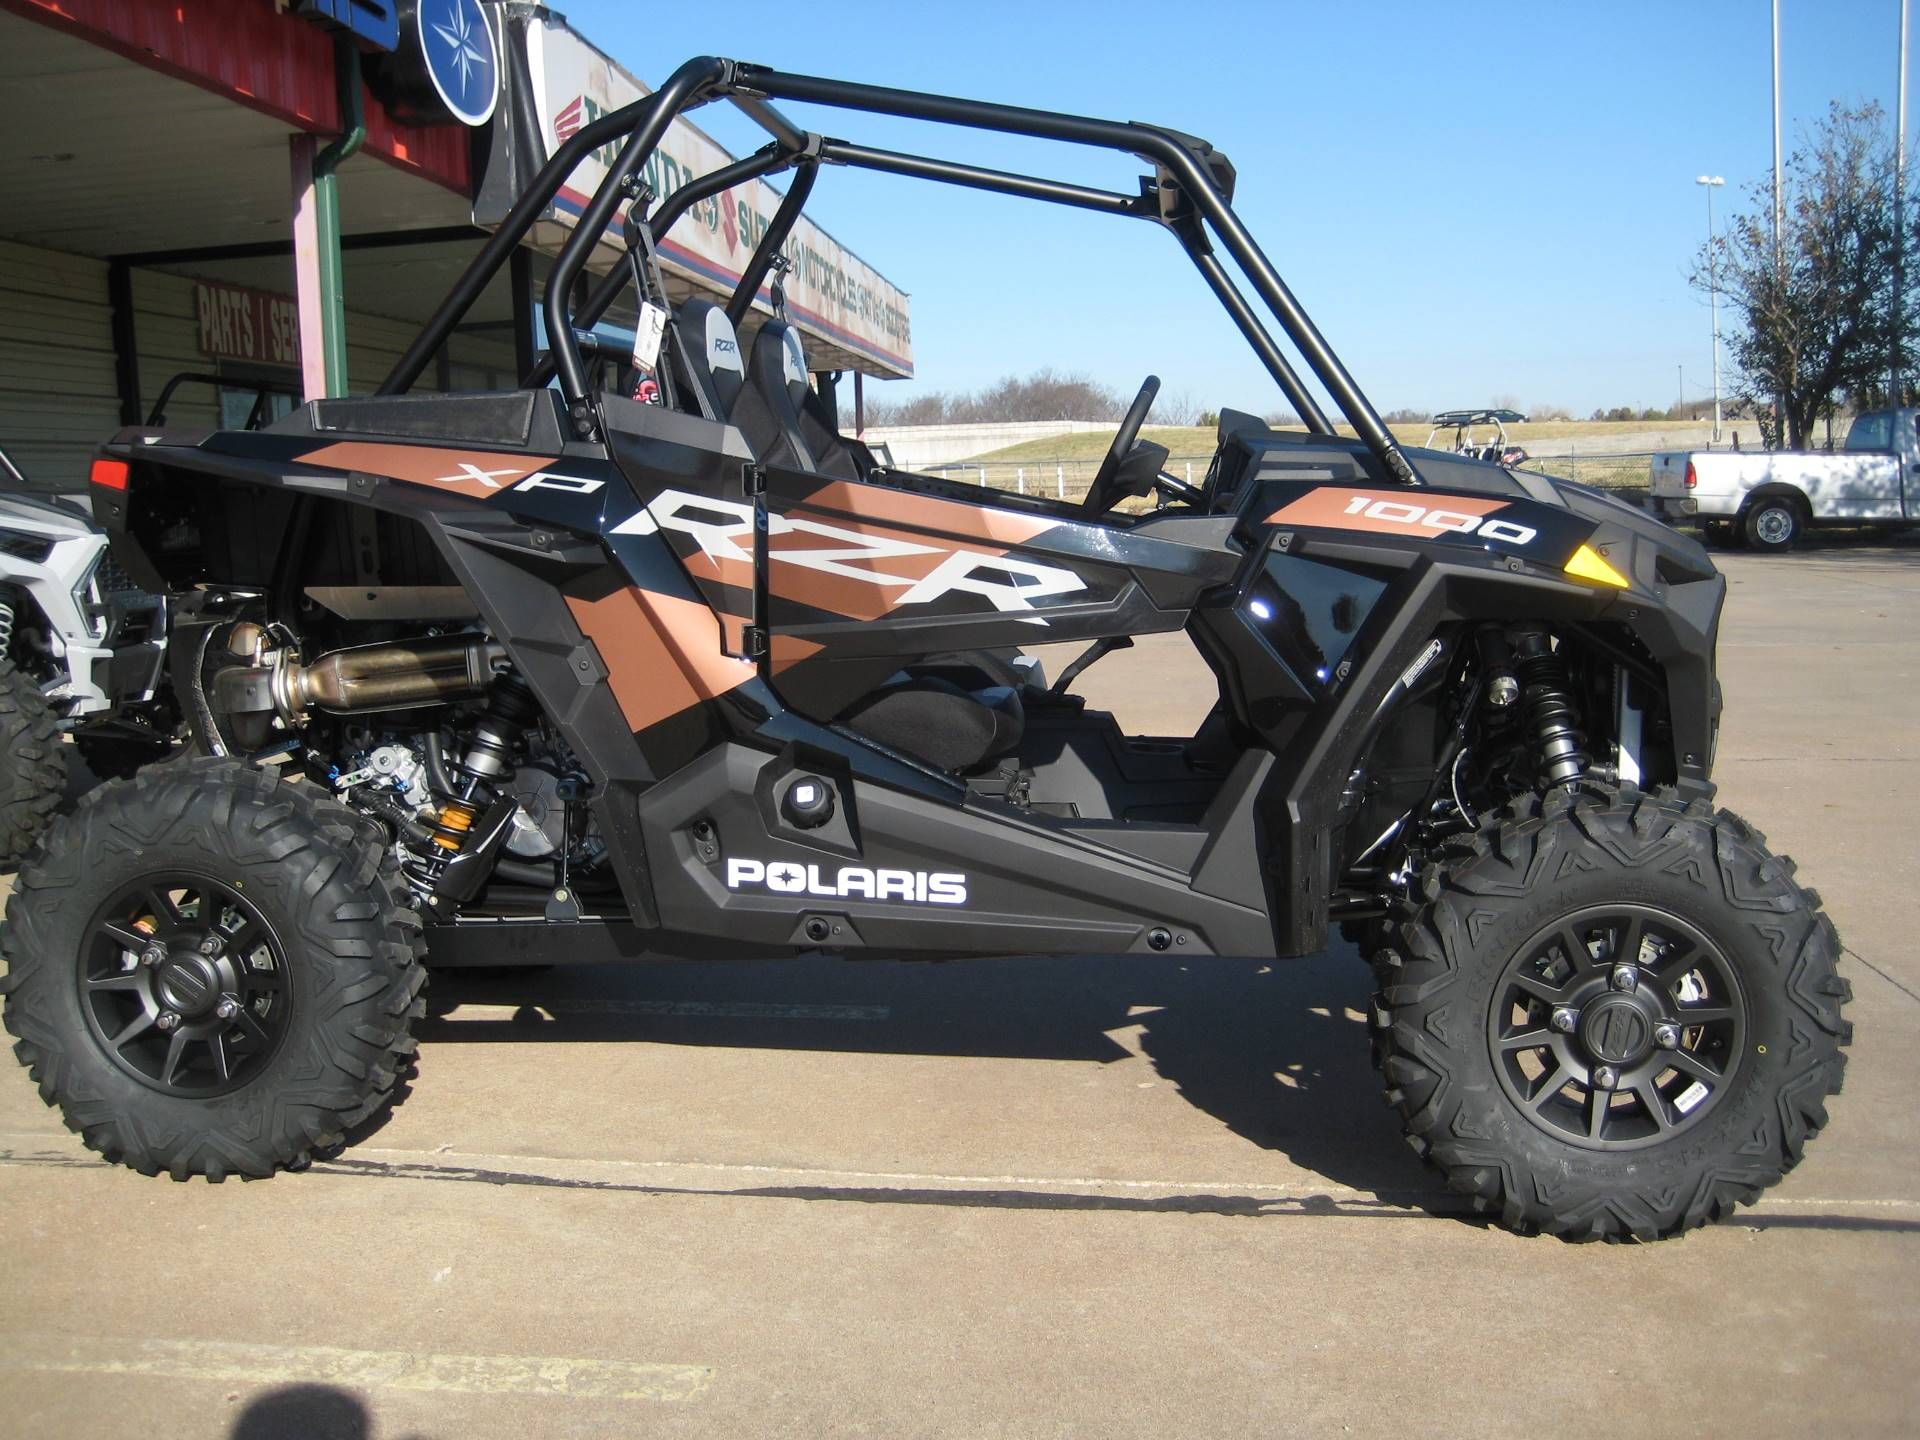 2021 Polaris RZR XP 1000 Sport in Broken Arrow, Oklahoma - Photo 3